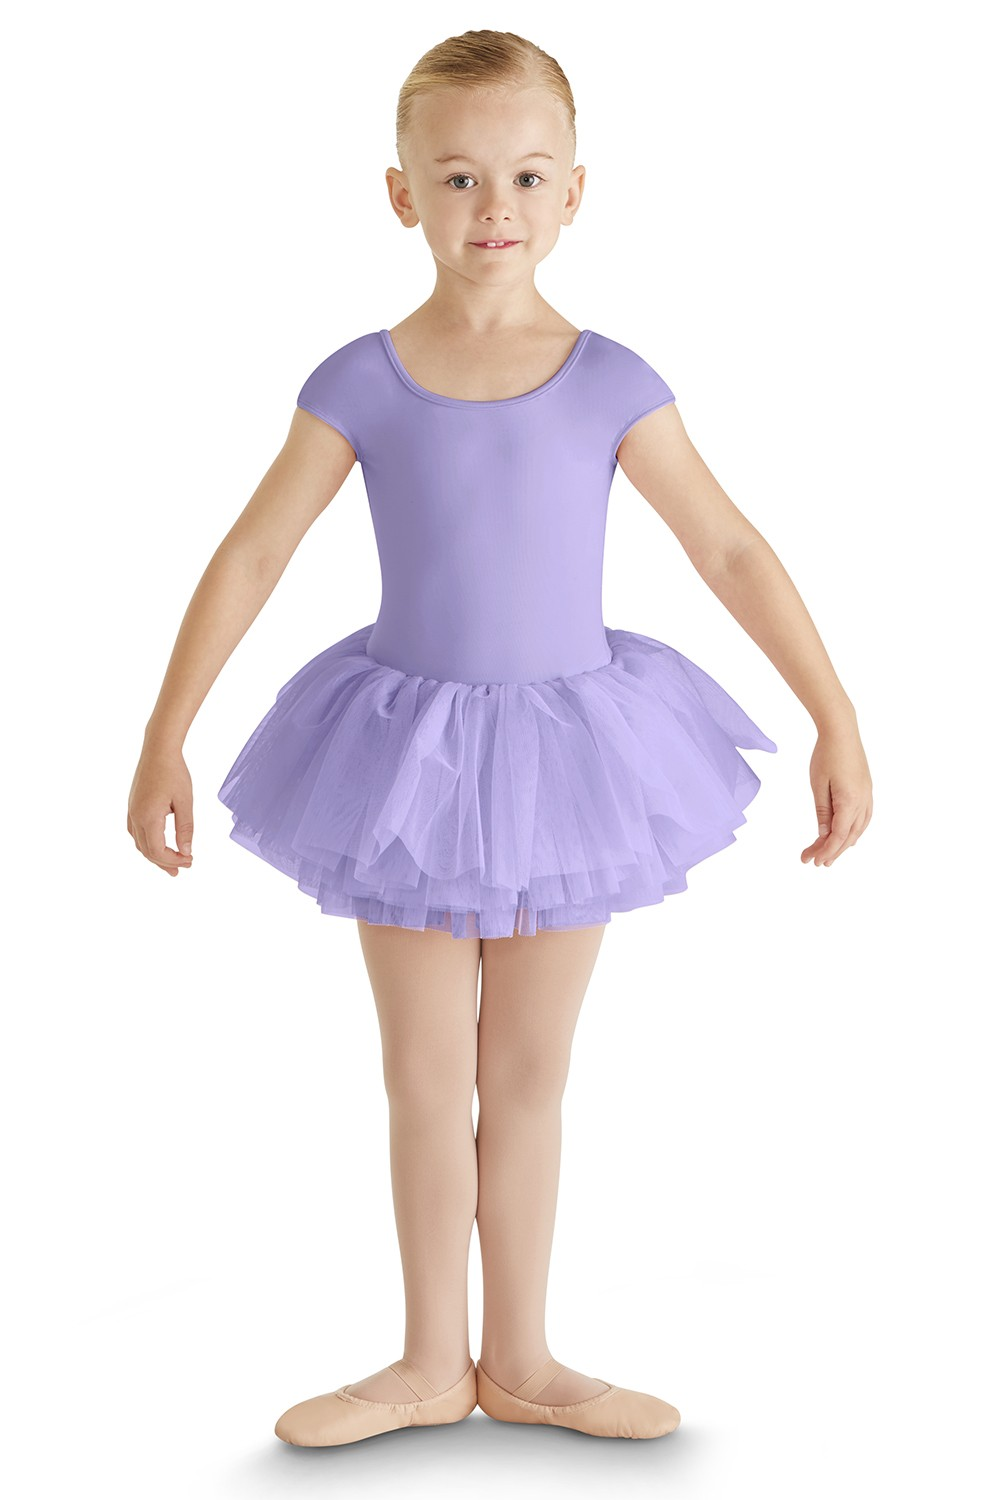 Frea Children's Dance Leotards